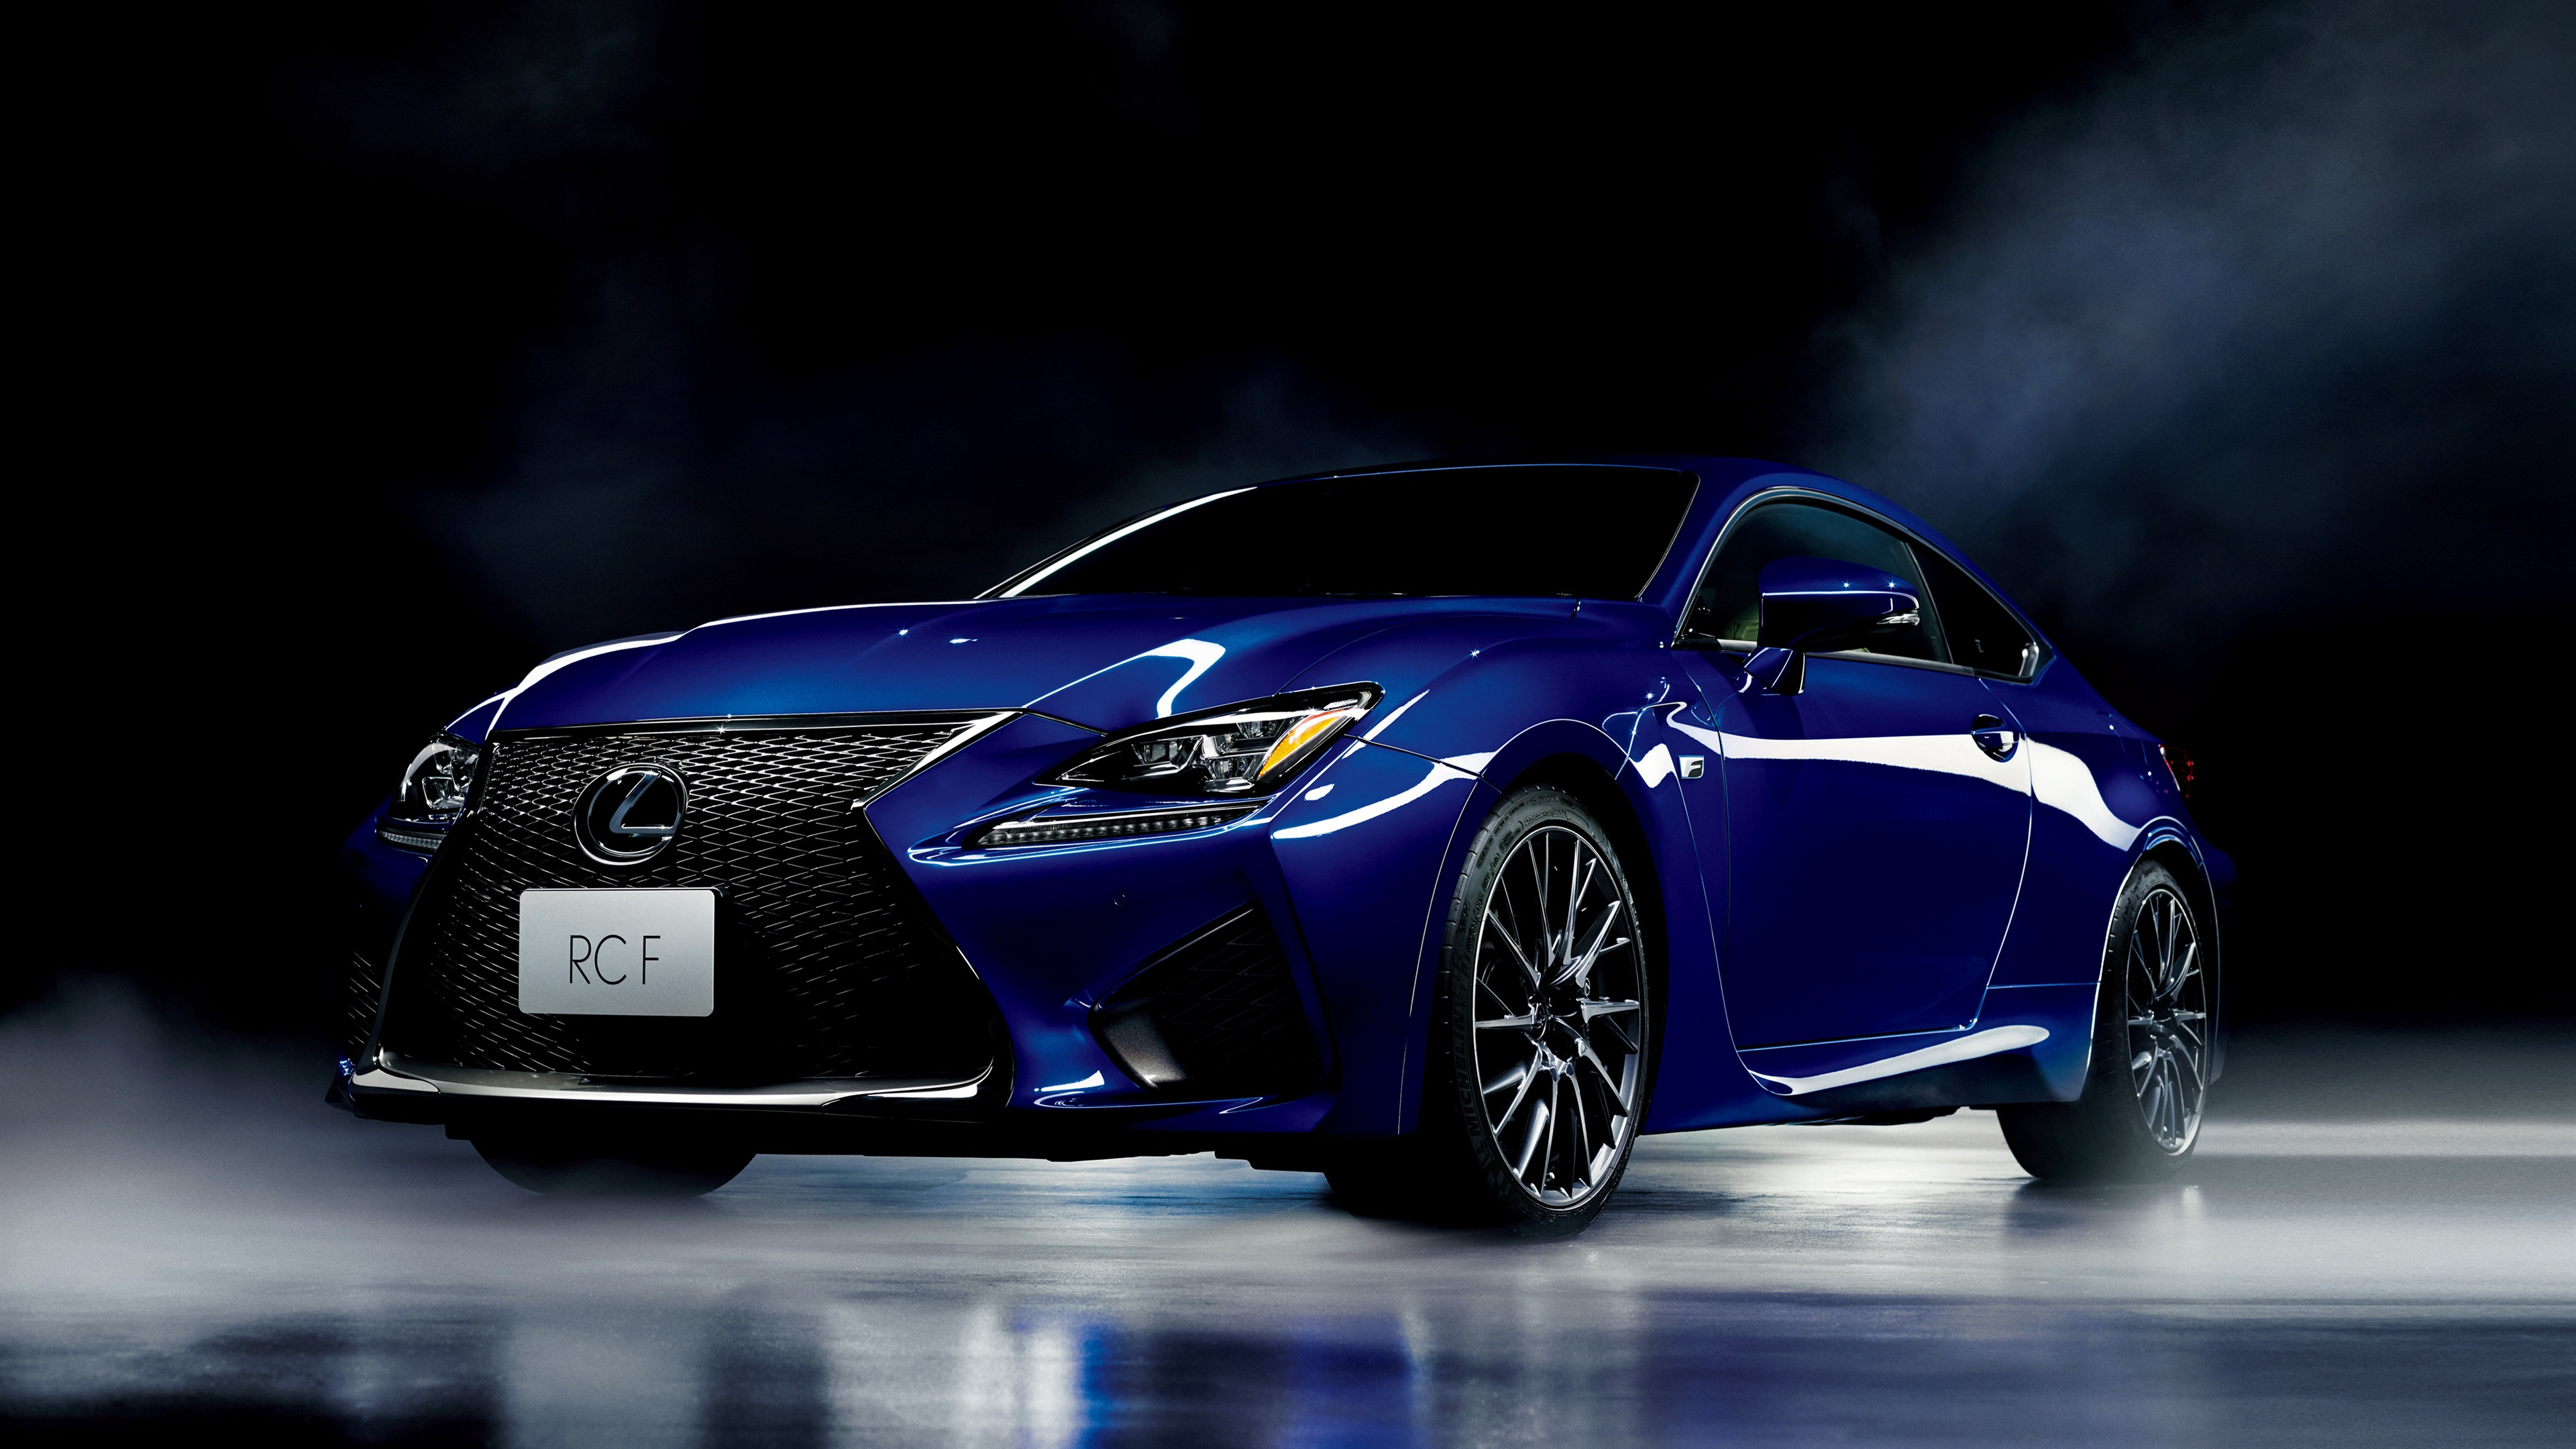 Lexus RC F blue car wallpaper cars Wallpaper Better 3840x2160